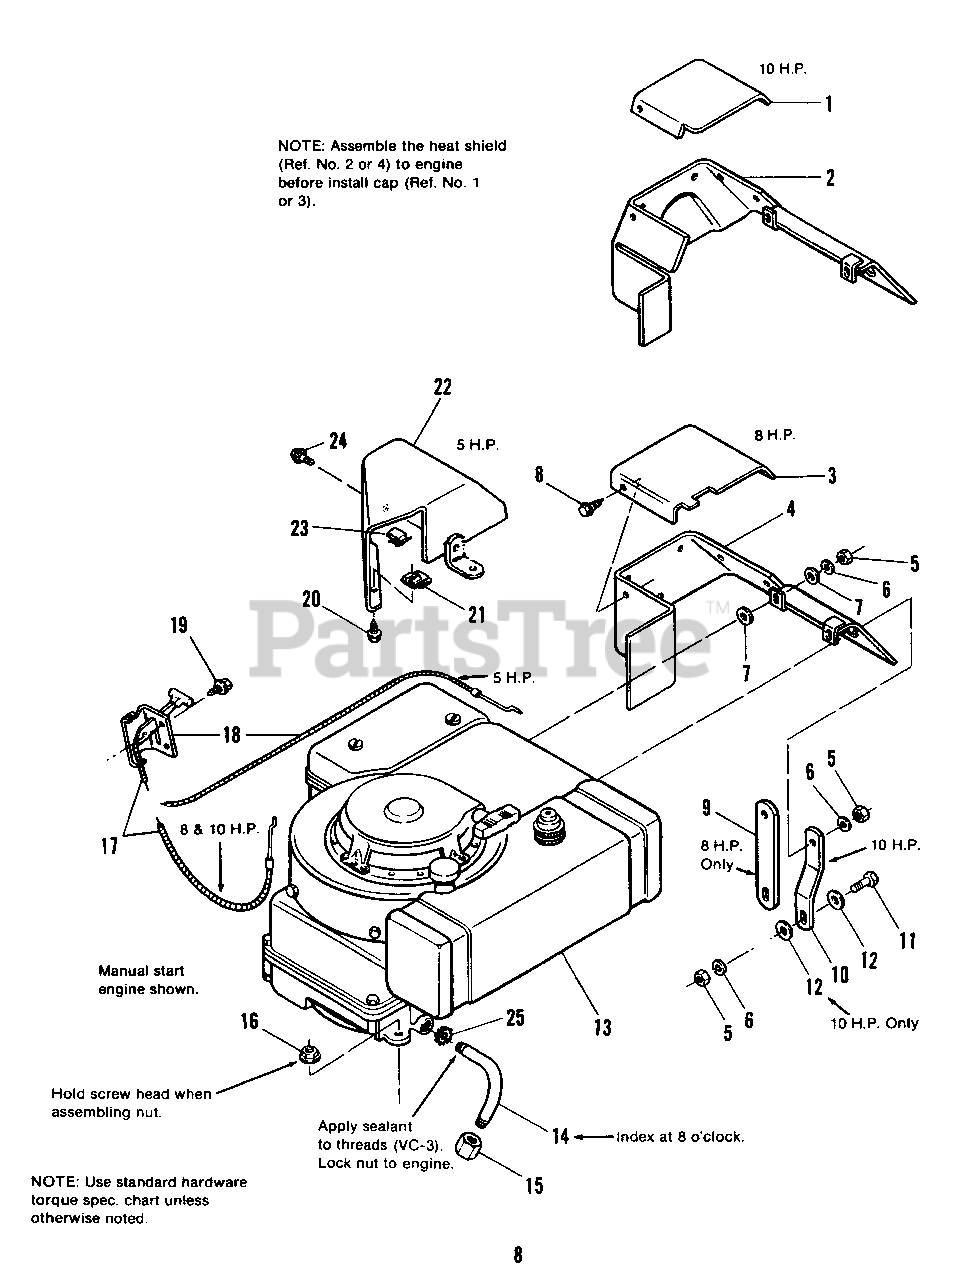 Simplicity 3110 (1690528) - Simplicity Rear-Engine Riding Mower Engine  Drive Group - Engine Section Parts Lookup with Diagrams   PartsTree   Group Engine Diagram      PartsTree